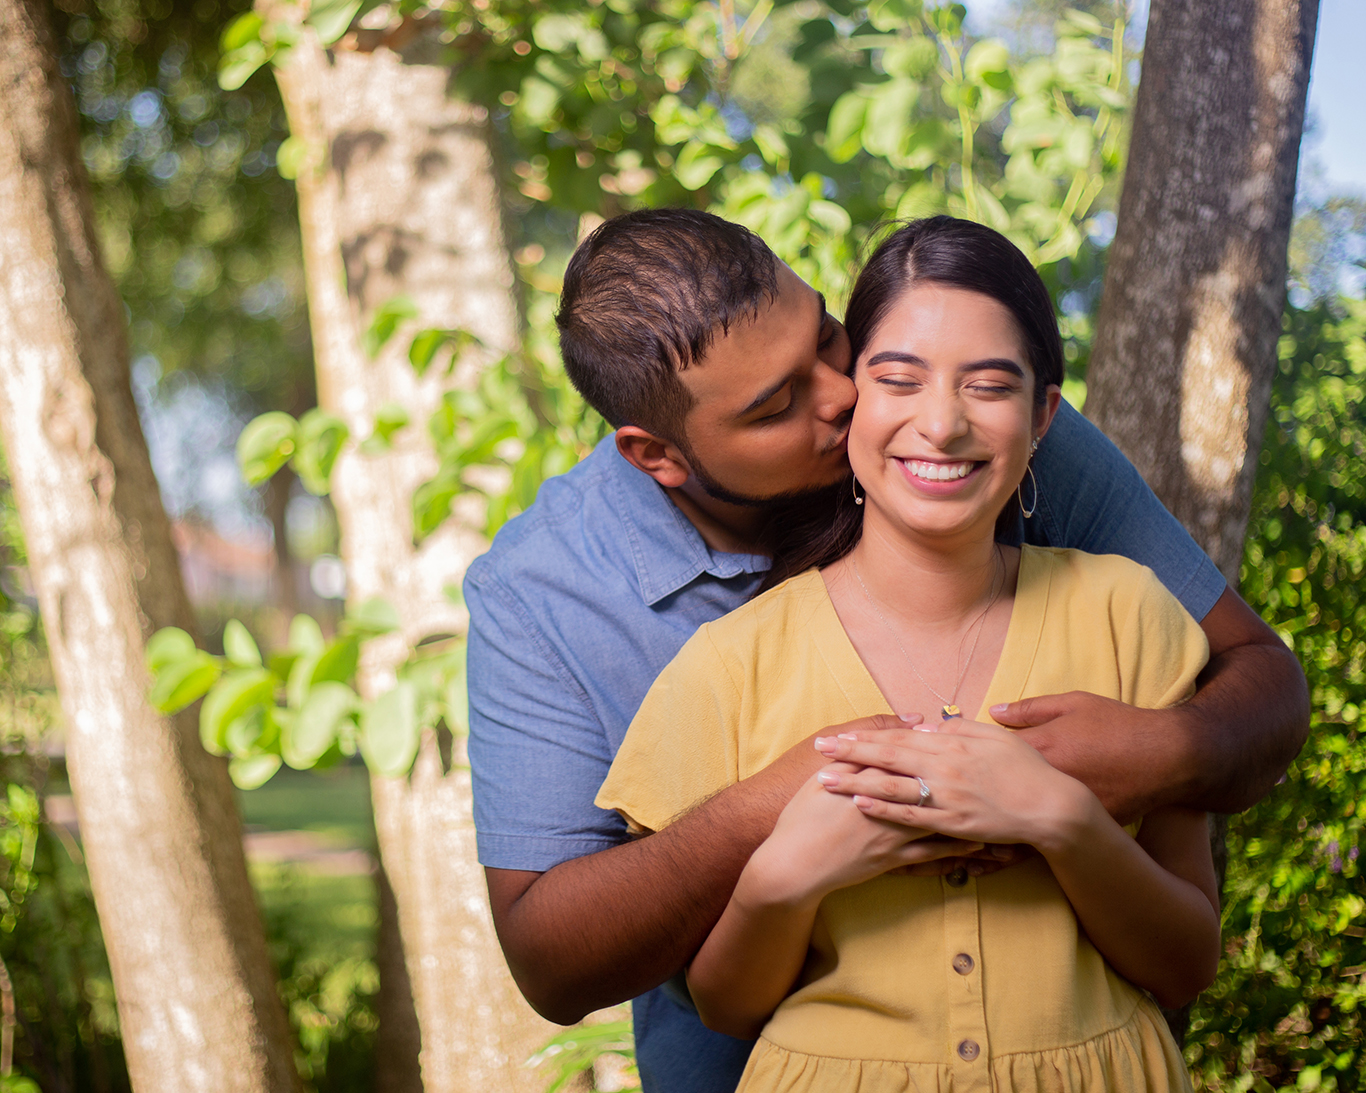 outdoor engagement photo shoot